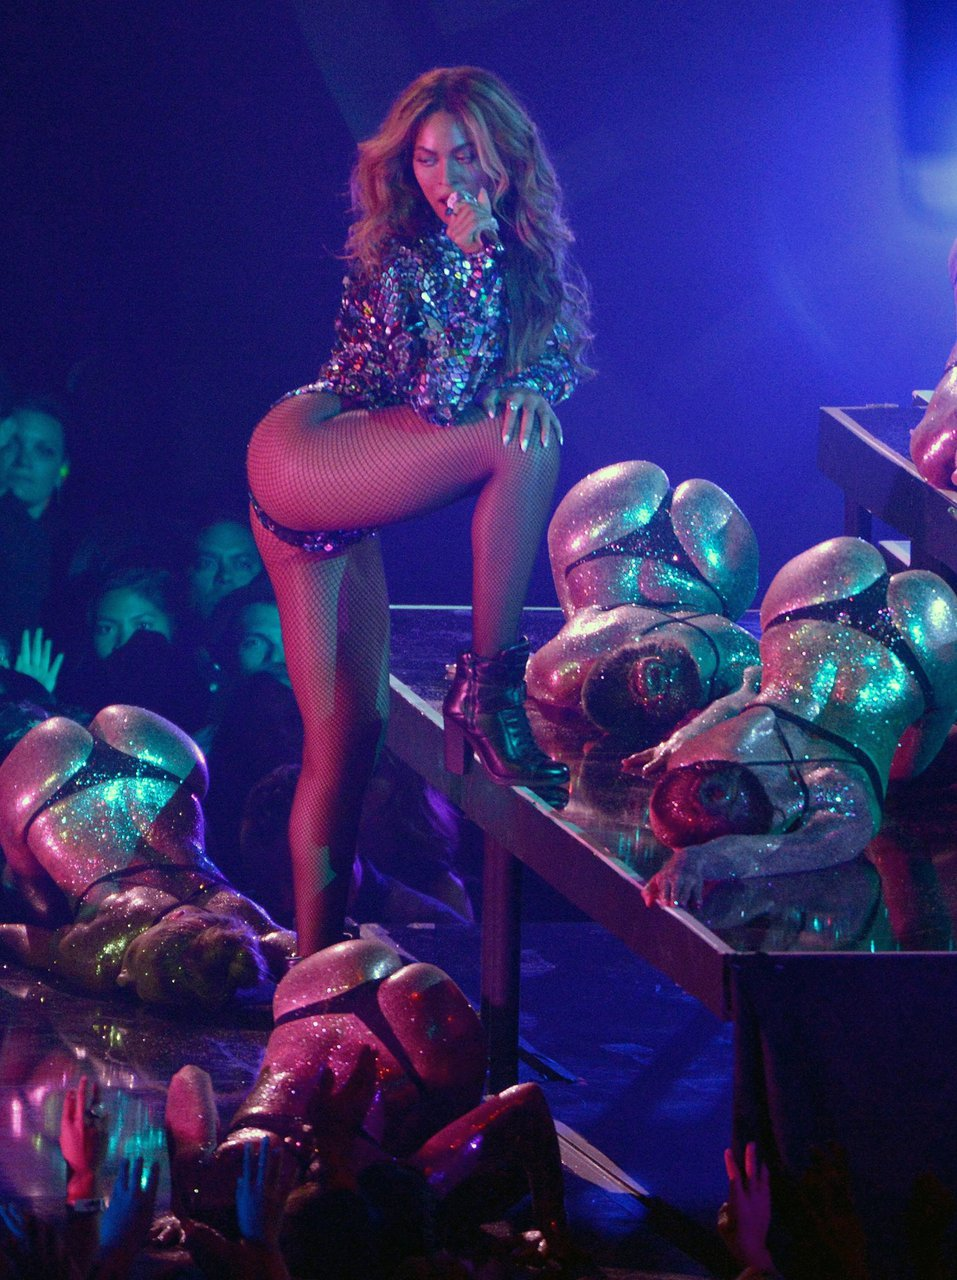 Beyonce flashes bare butt in bodysuit during tour